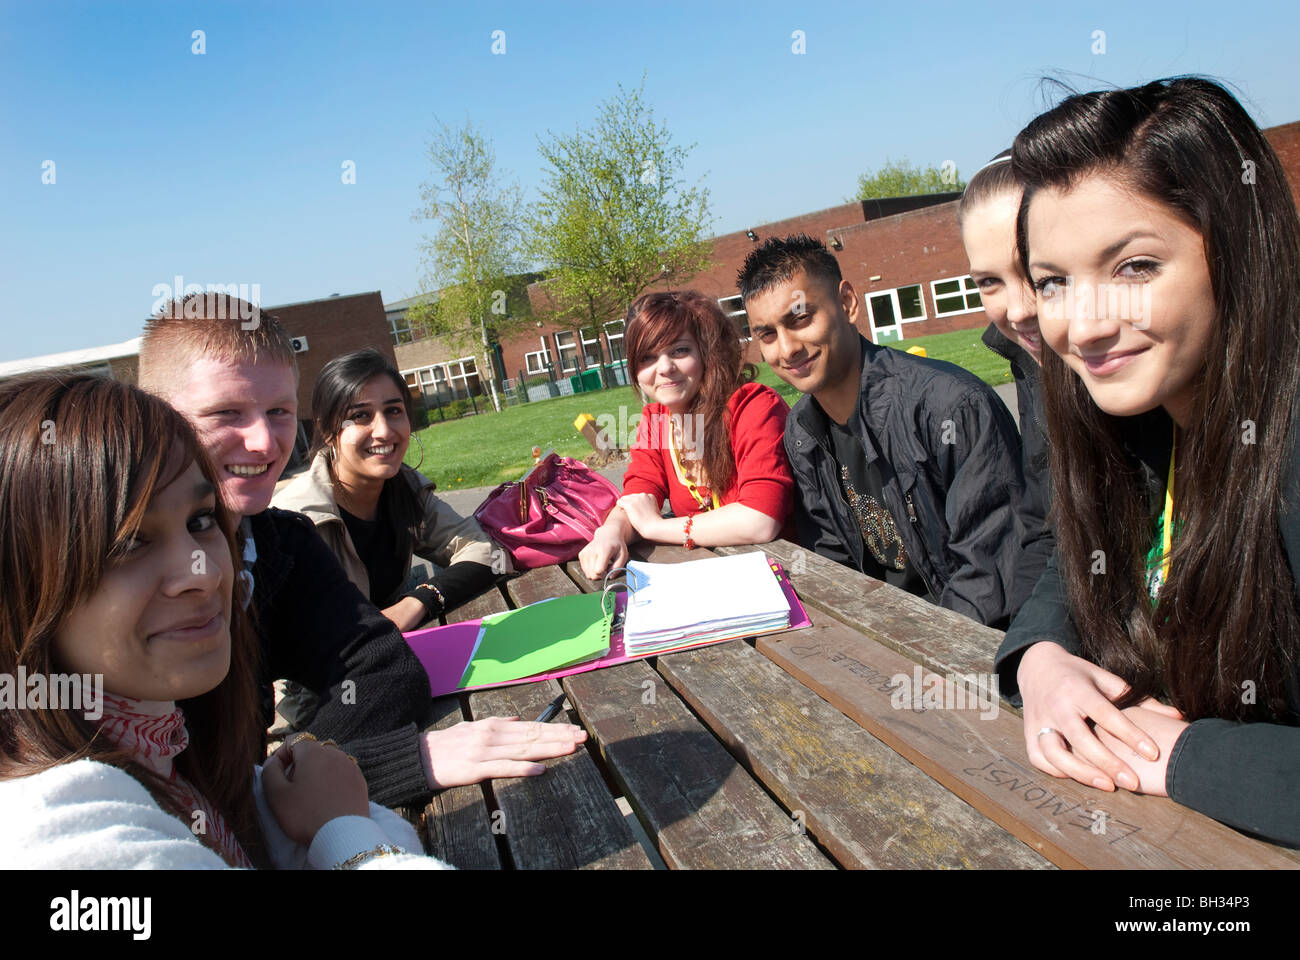 A group of students gather around a picnic table at lunch to work UK - Stock Image